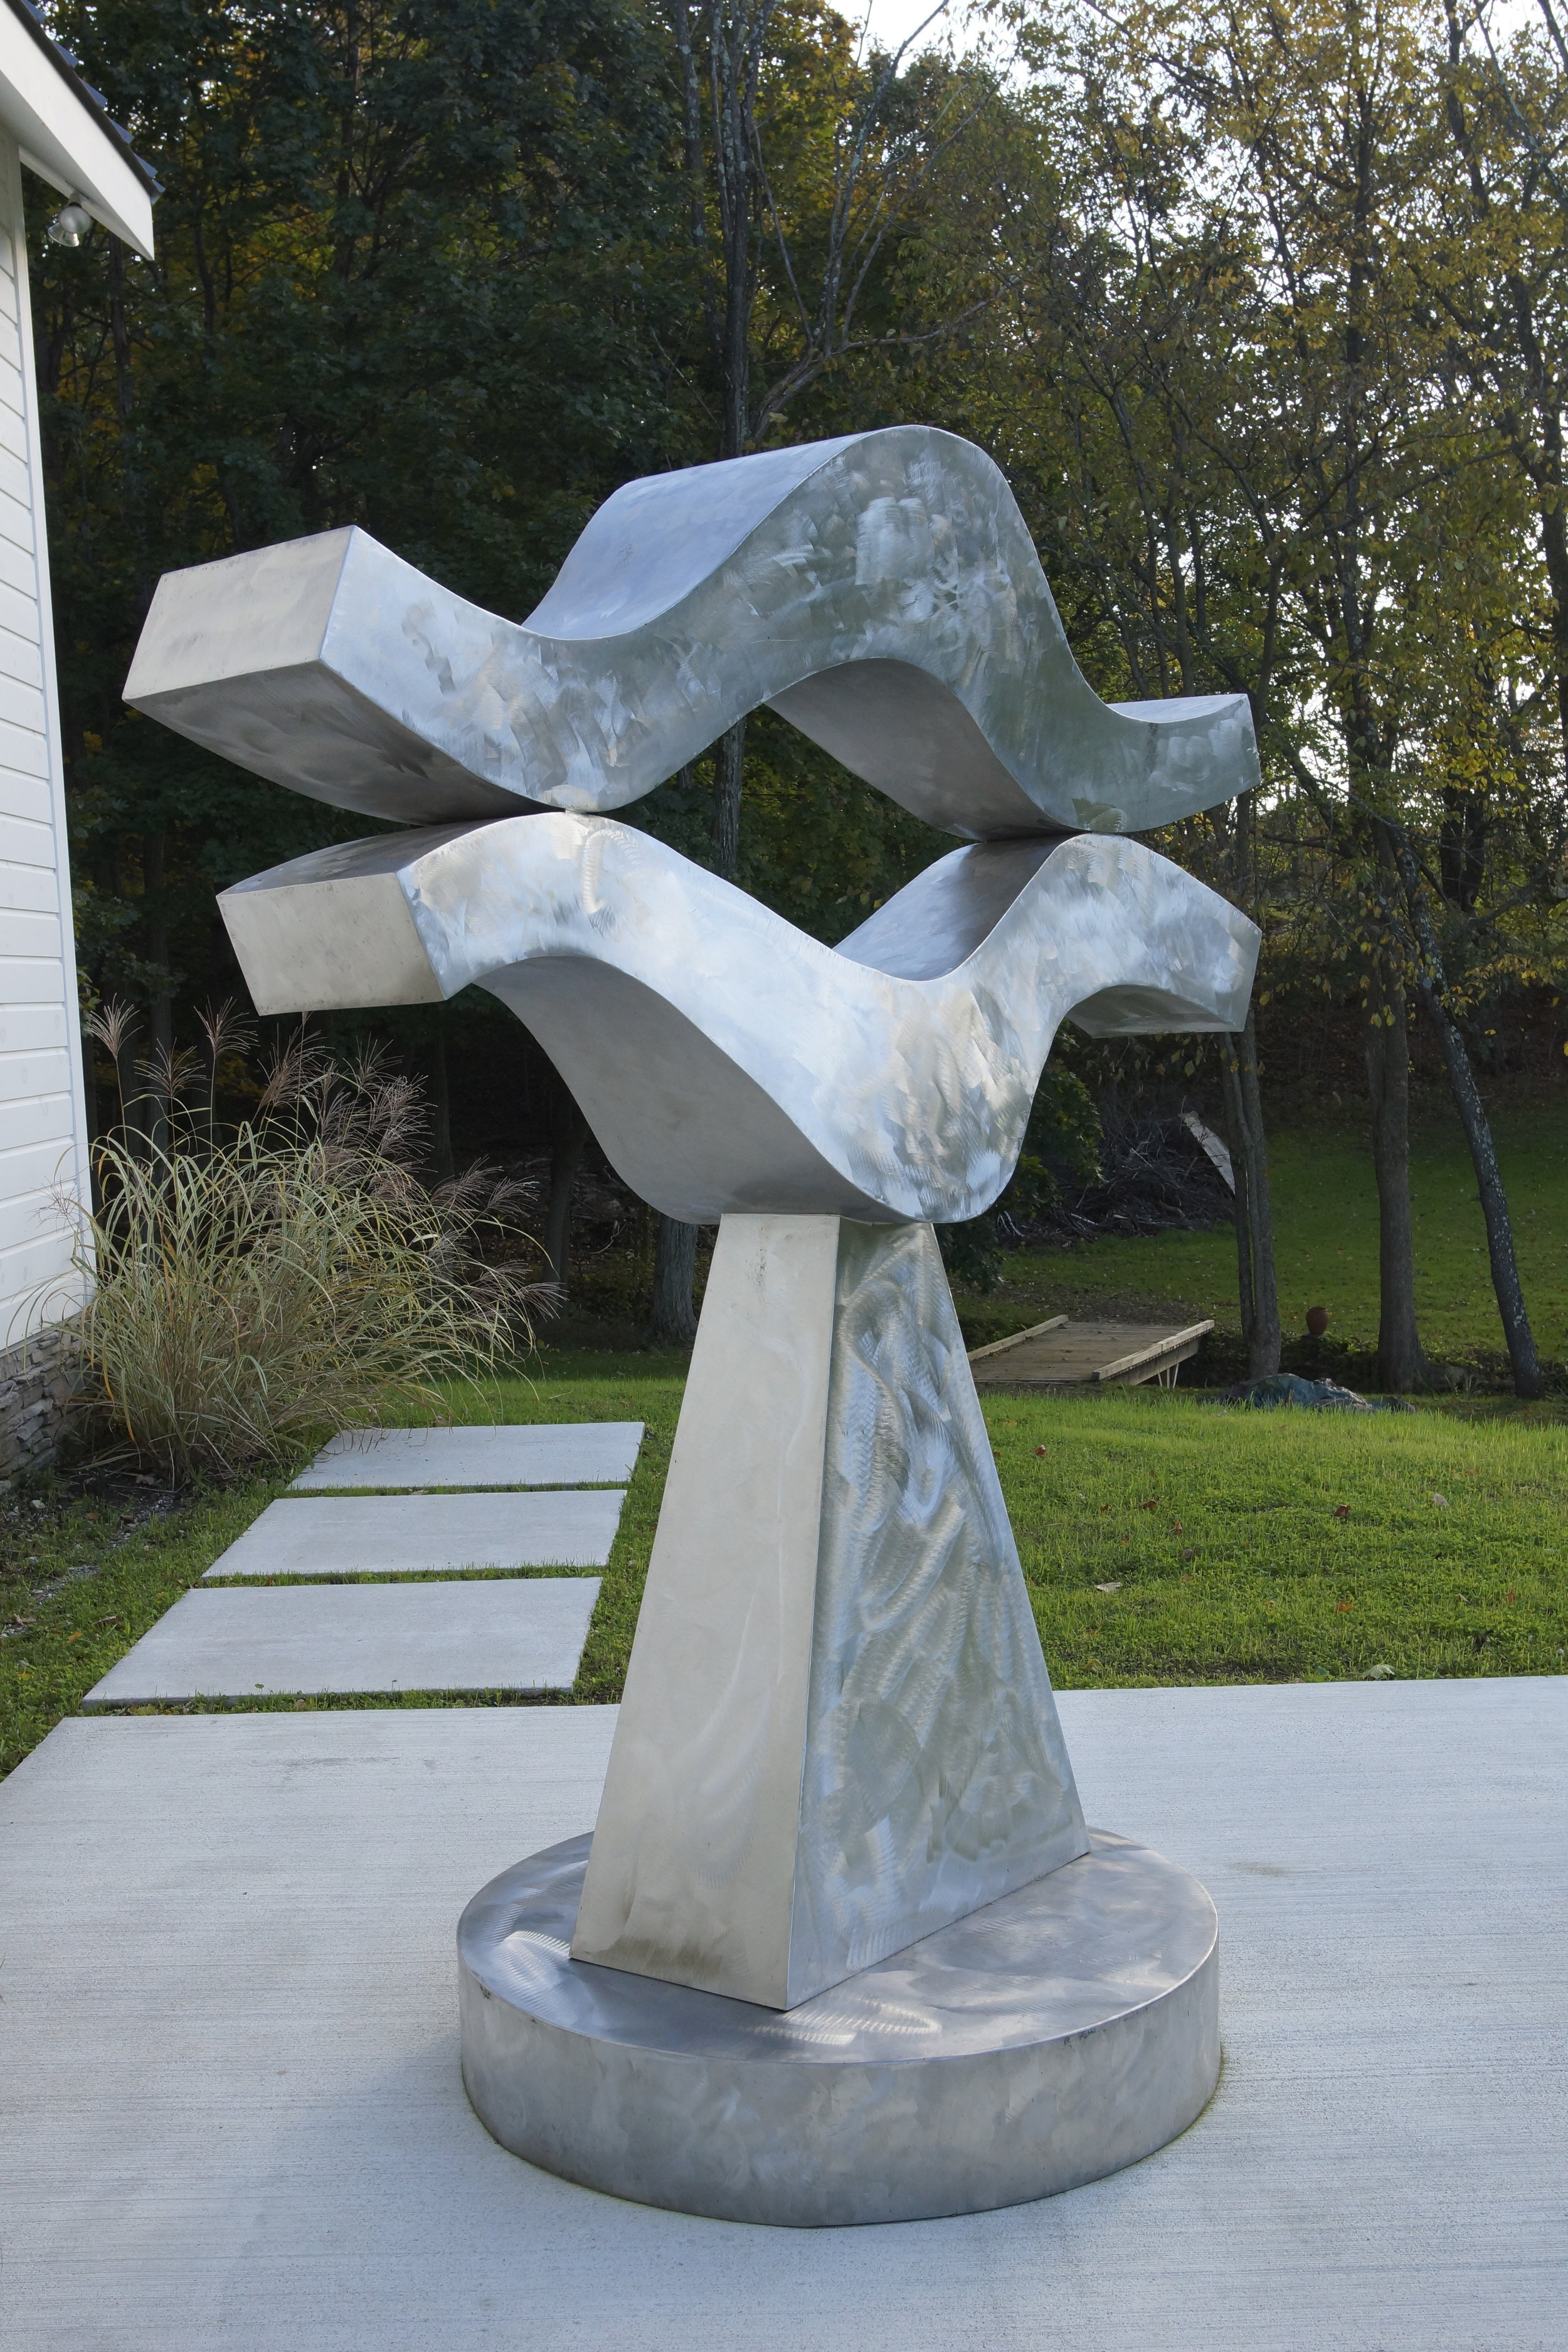 Lips, 1986  , stainless steel, 96 x 72 x 24 inches, installation at Vallarino Fine Art, Studio, Millbrook, NY